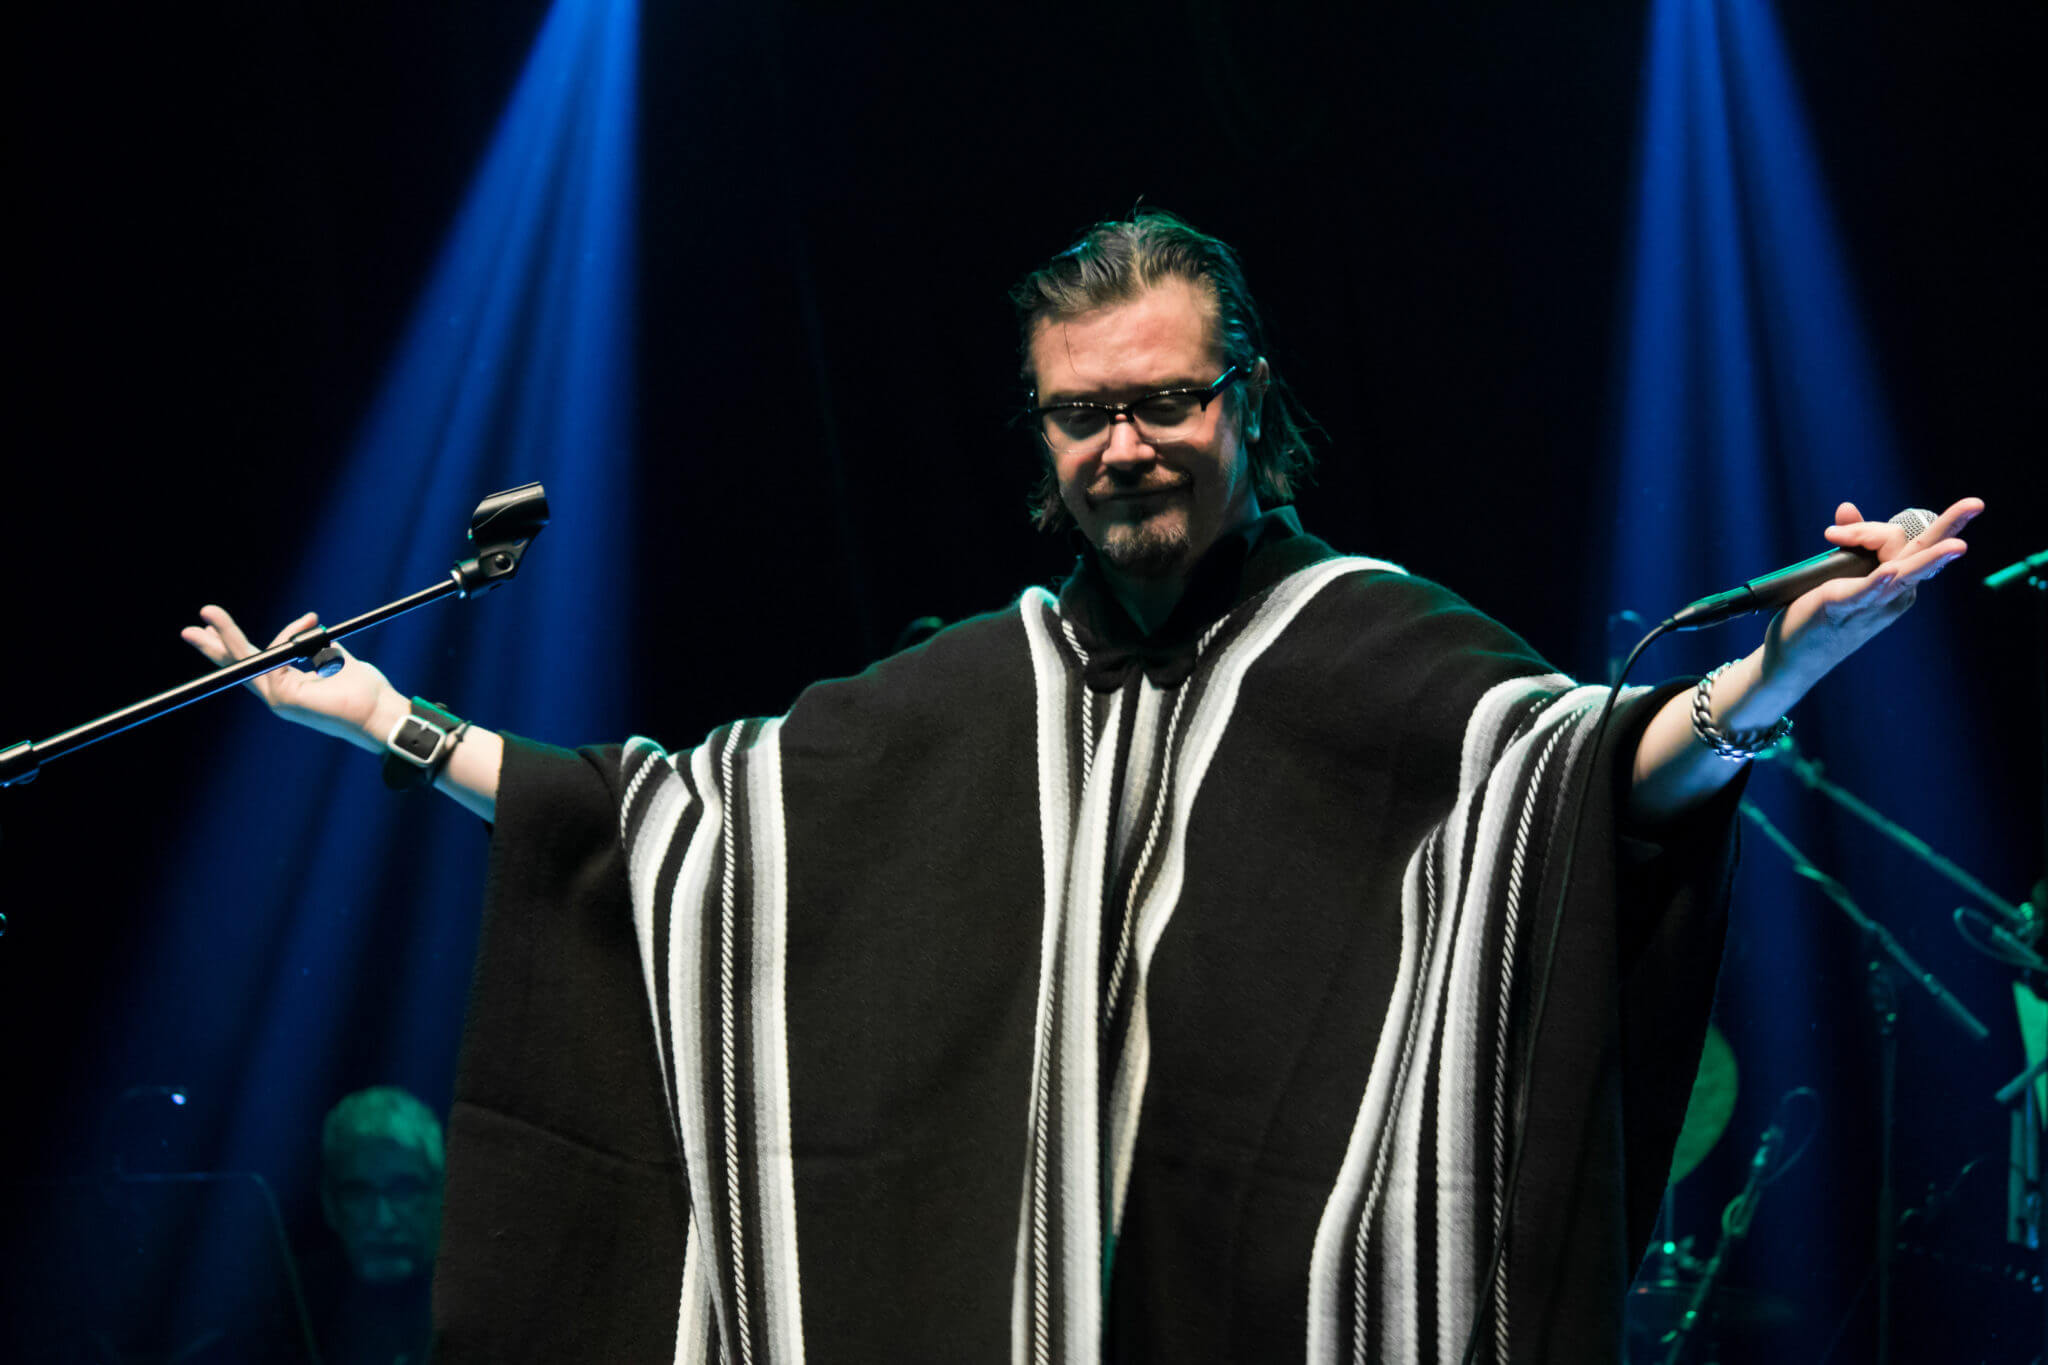 Mike Patton's Mondo Cane: El idilio inagotable